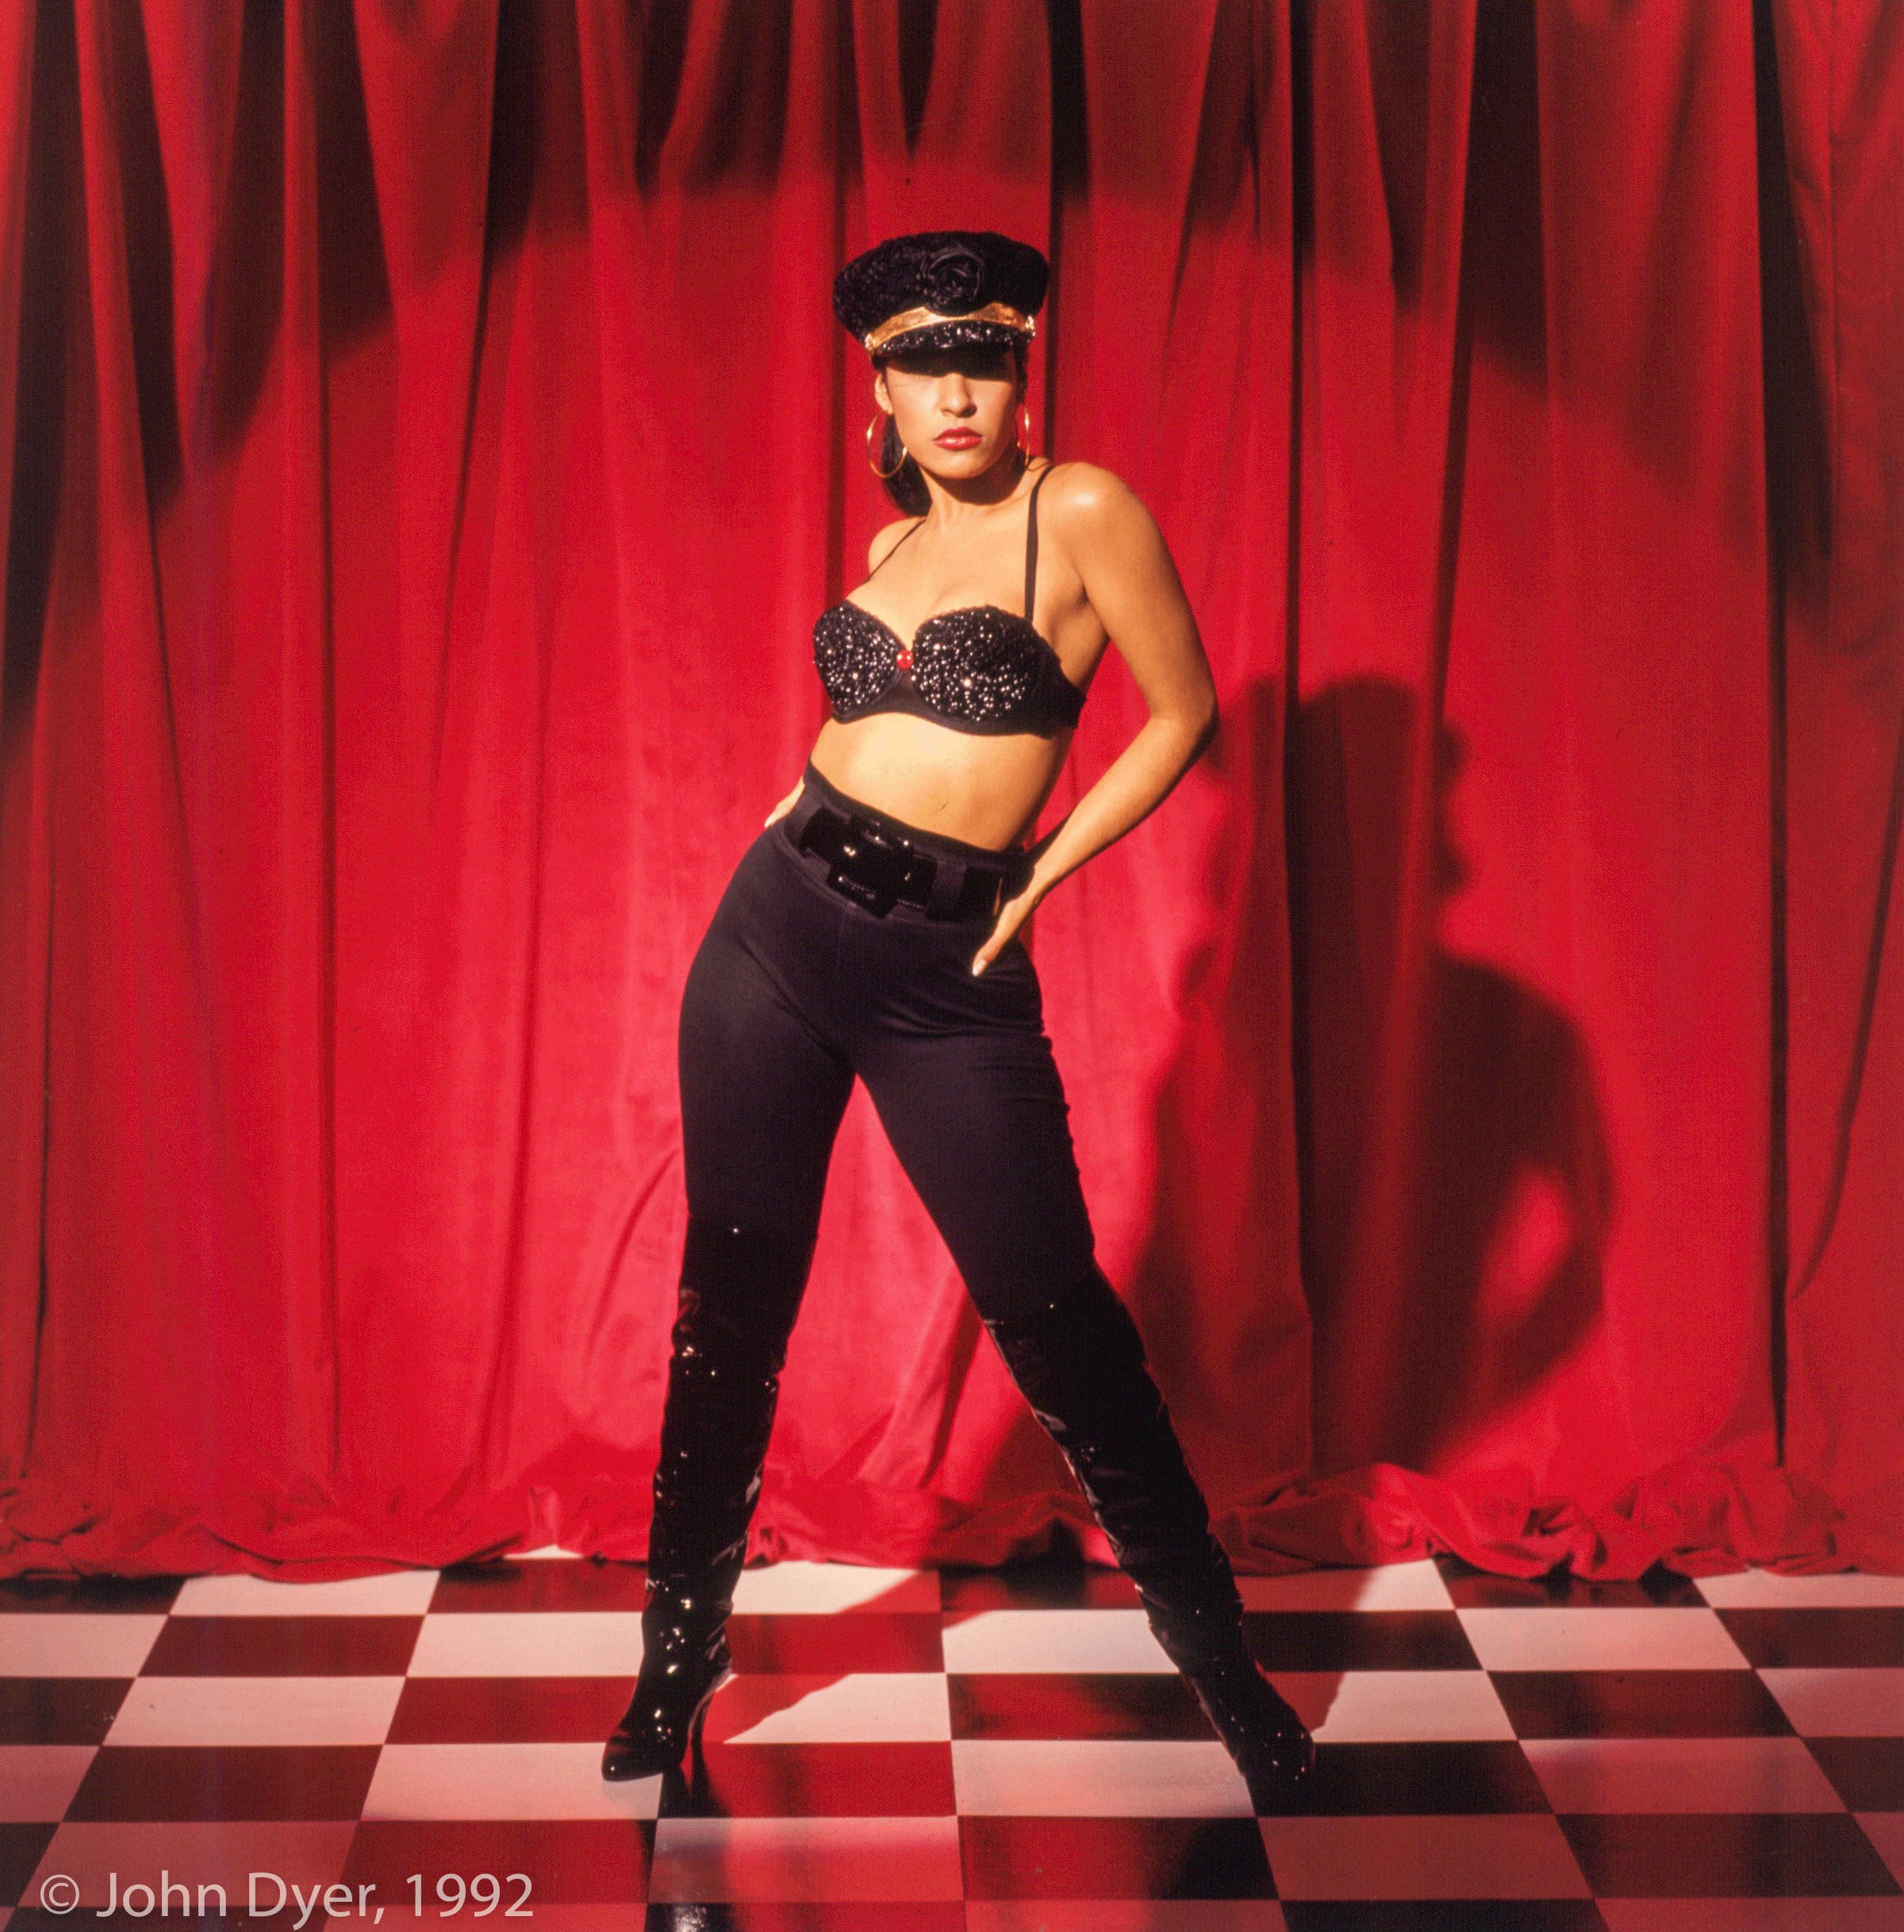 selena quintanilla posing for the camera whole standing on a checkered floor and red backdrop